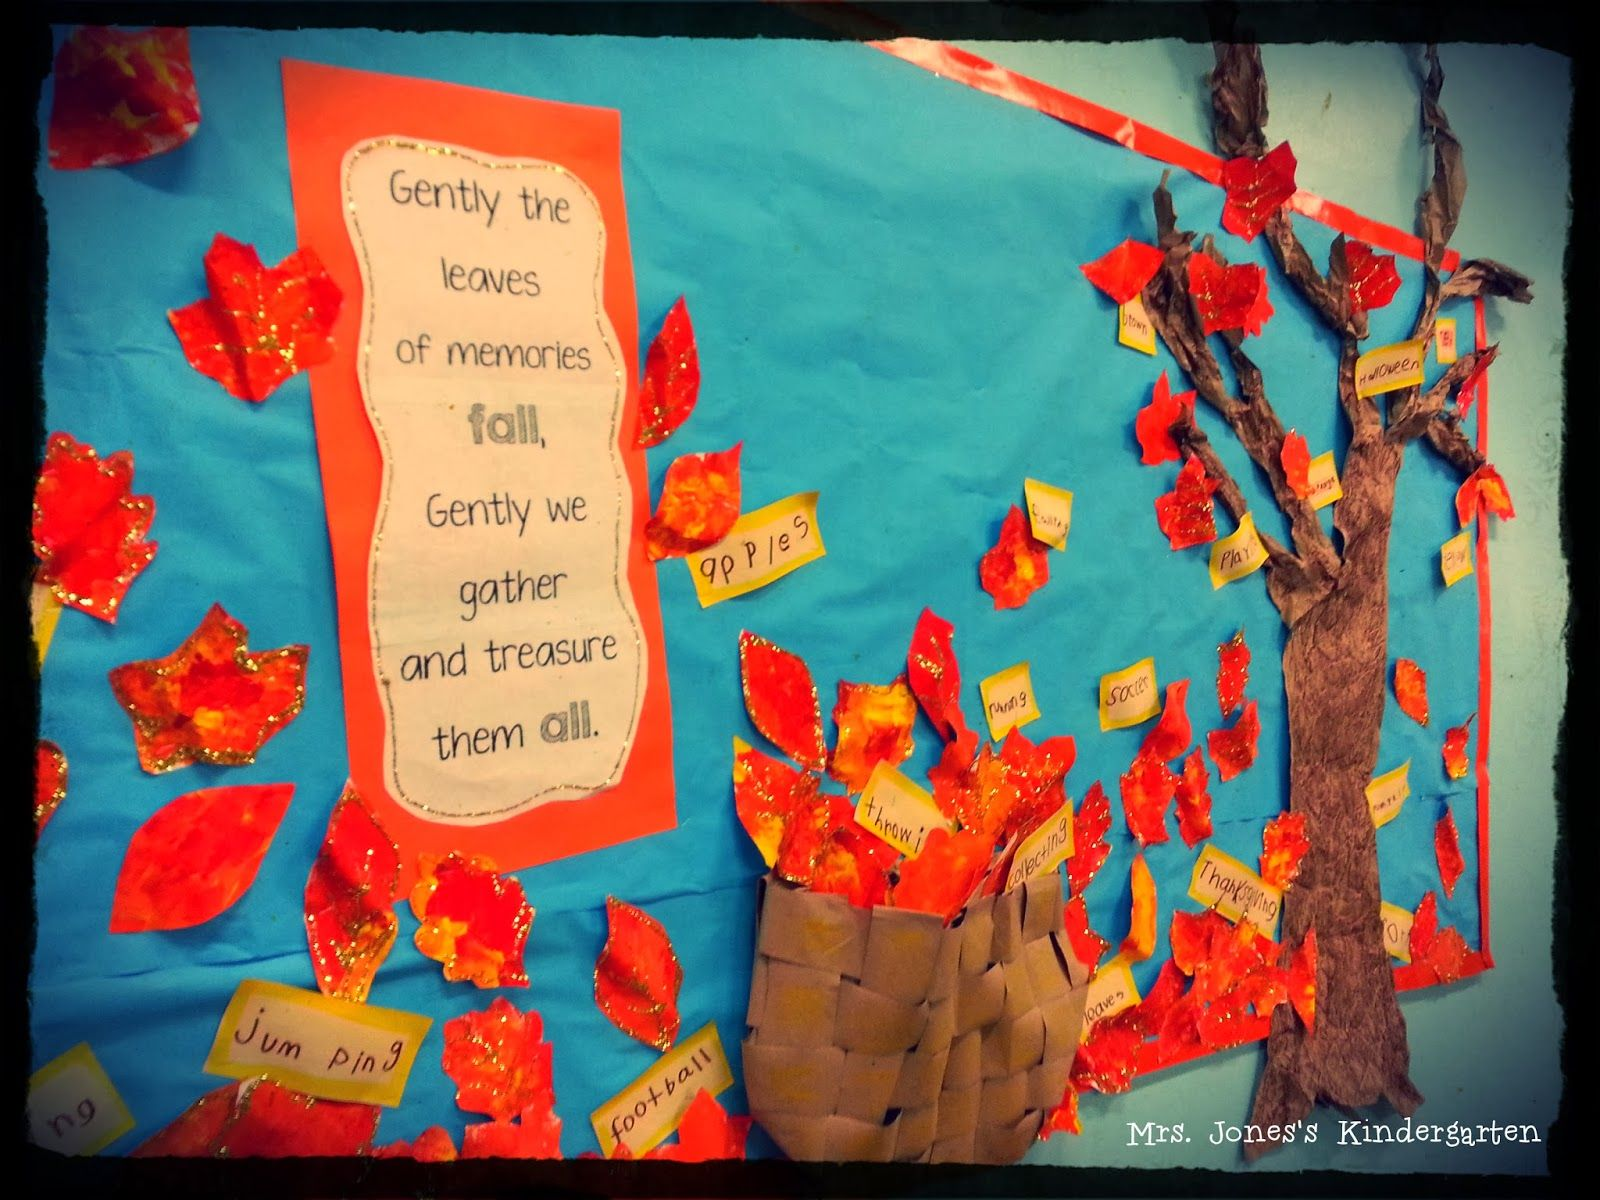 Mrs Jones's Kindergarten: Finally! | Classroom Ideas